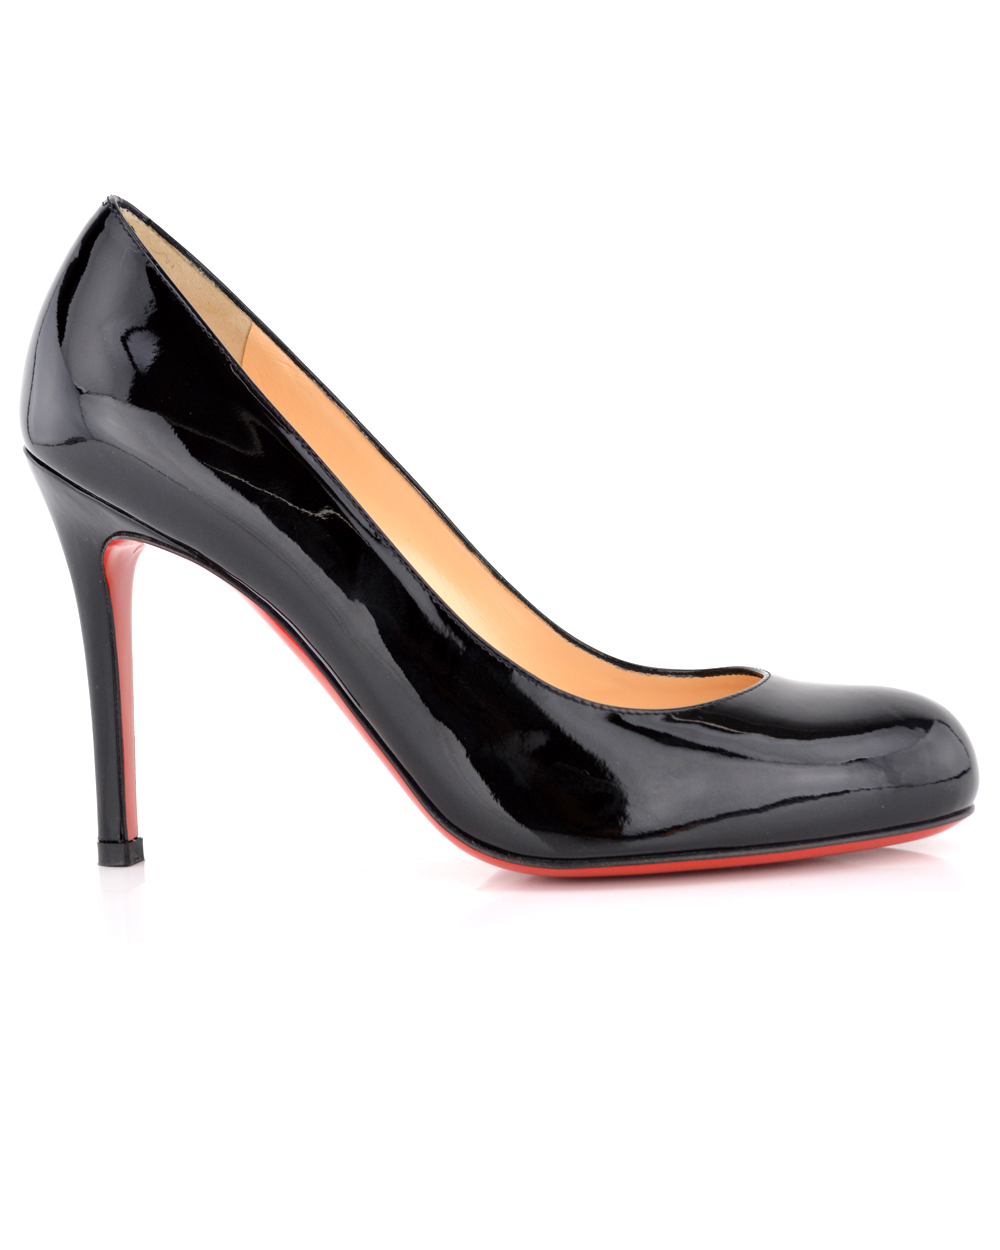 christian louboutin New Simple pumps Black leather round toes ...